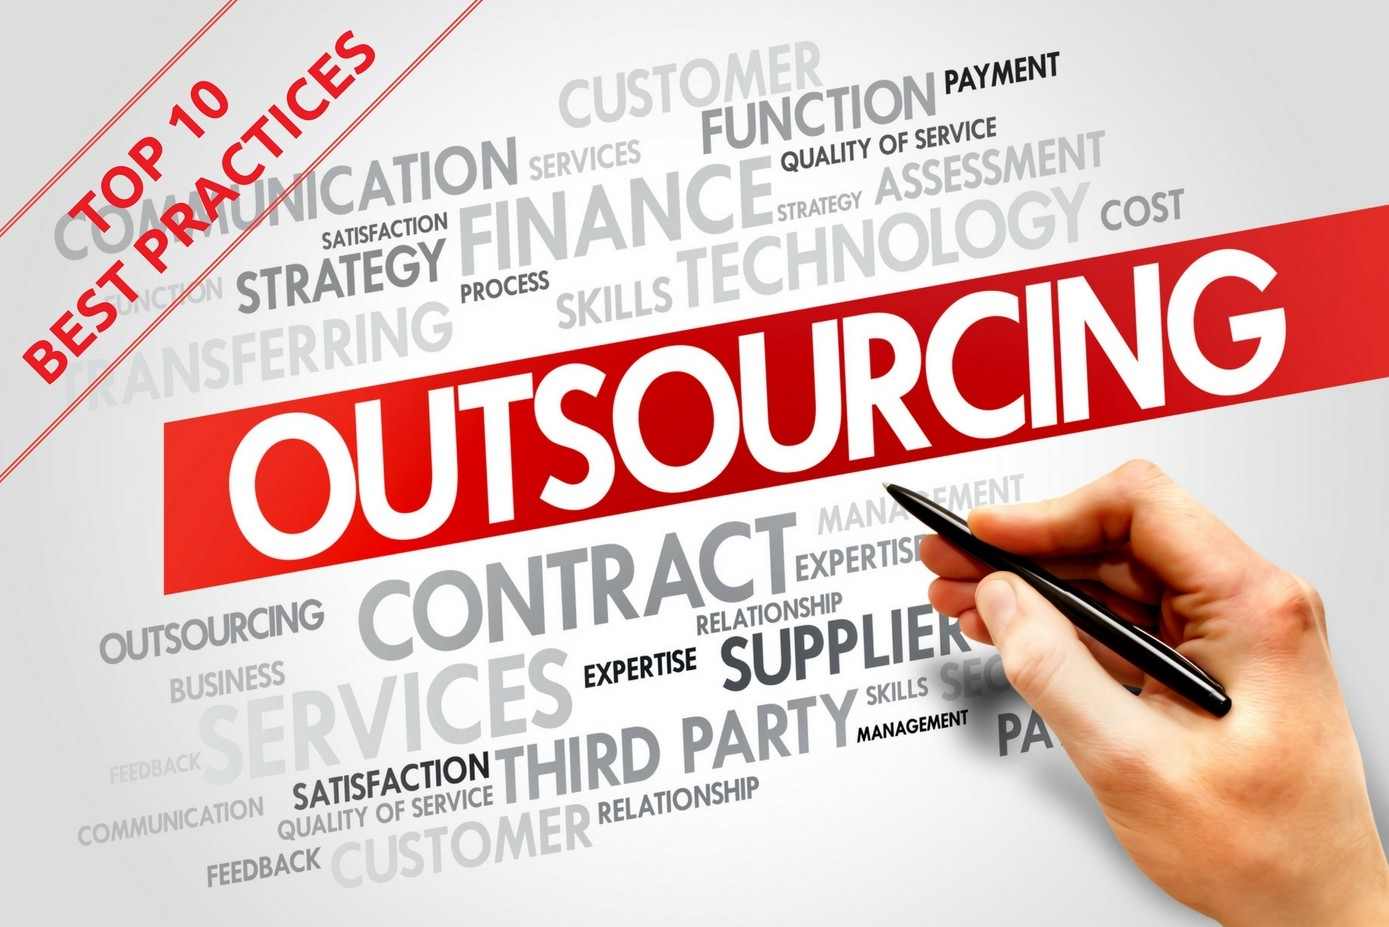 Top 10 Best Outsourcing Practices